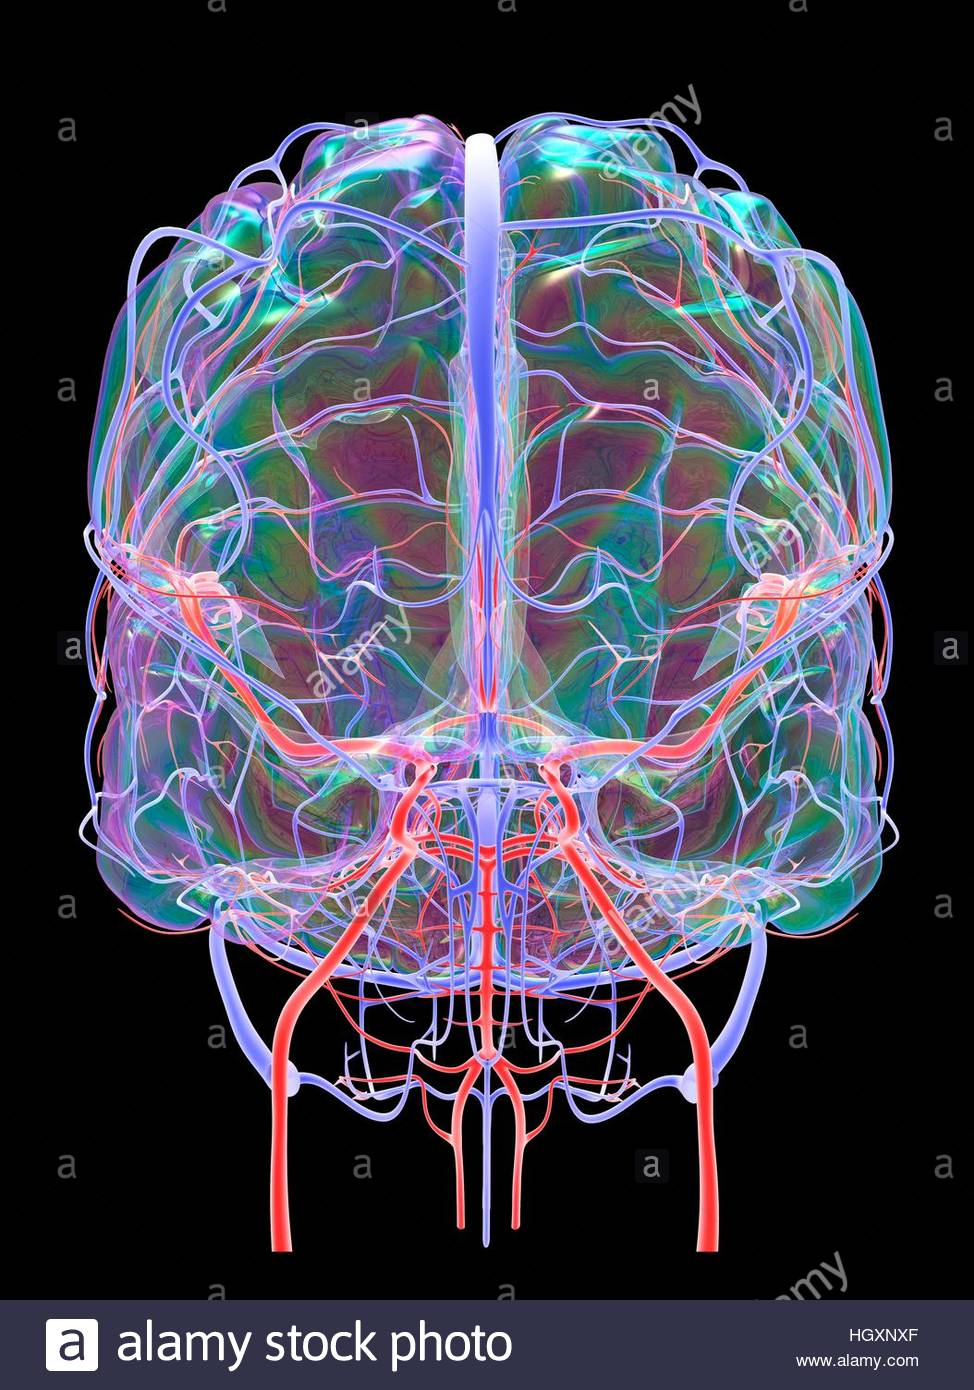 Brain vascular system and blood supply. Artwork showing the brain ...